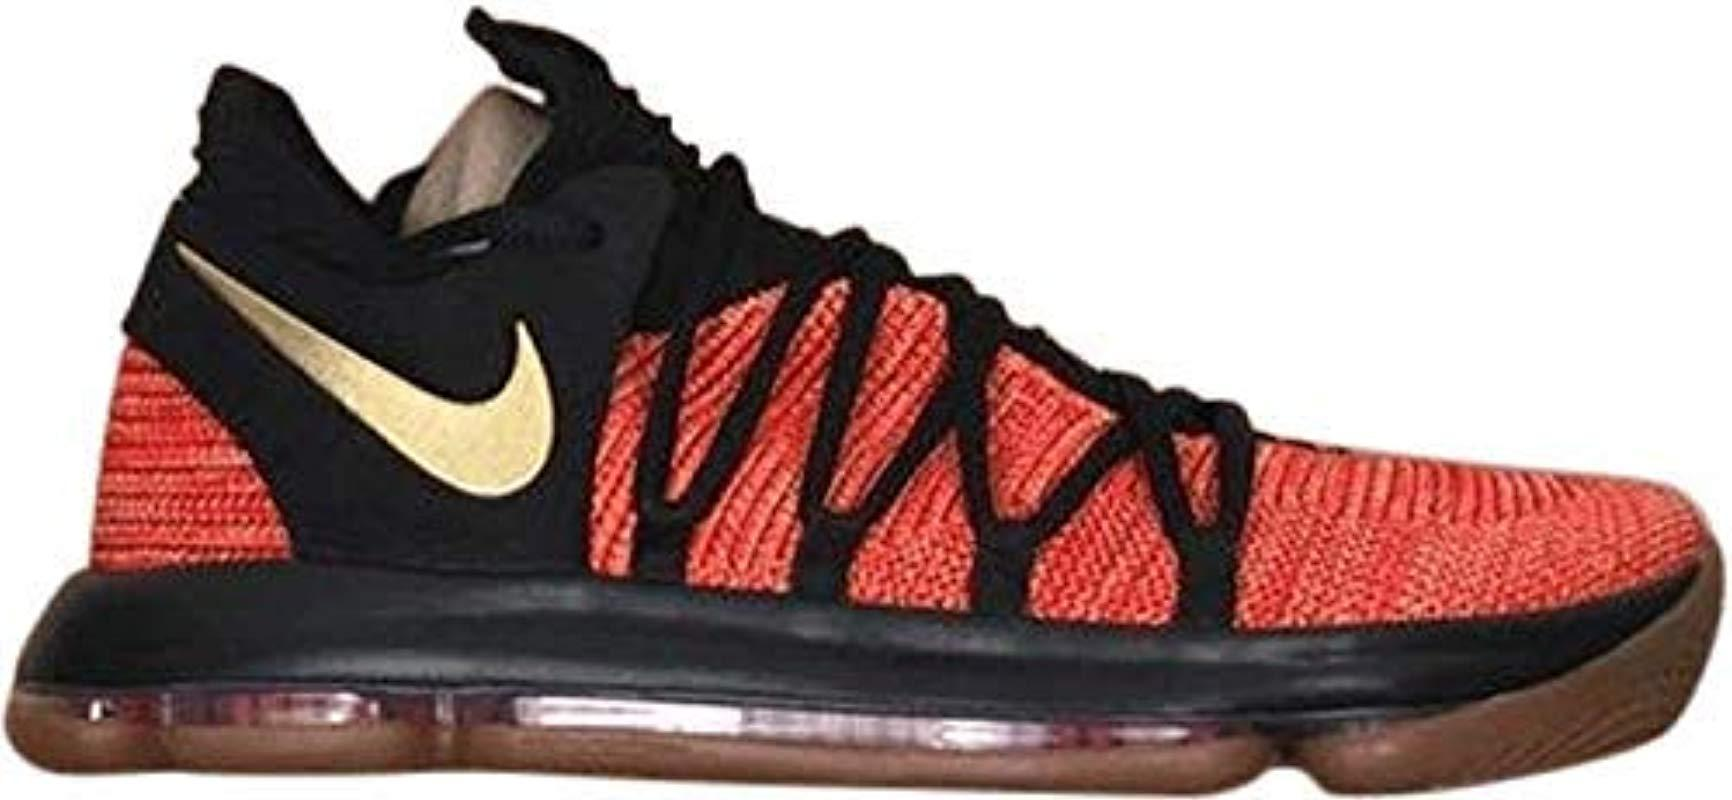 new styles a6000 df15d Nike Zoom Kd10 Nfs Basketball Shoes Cd6455 676 in University ...